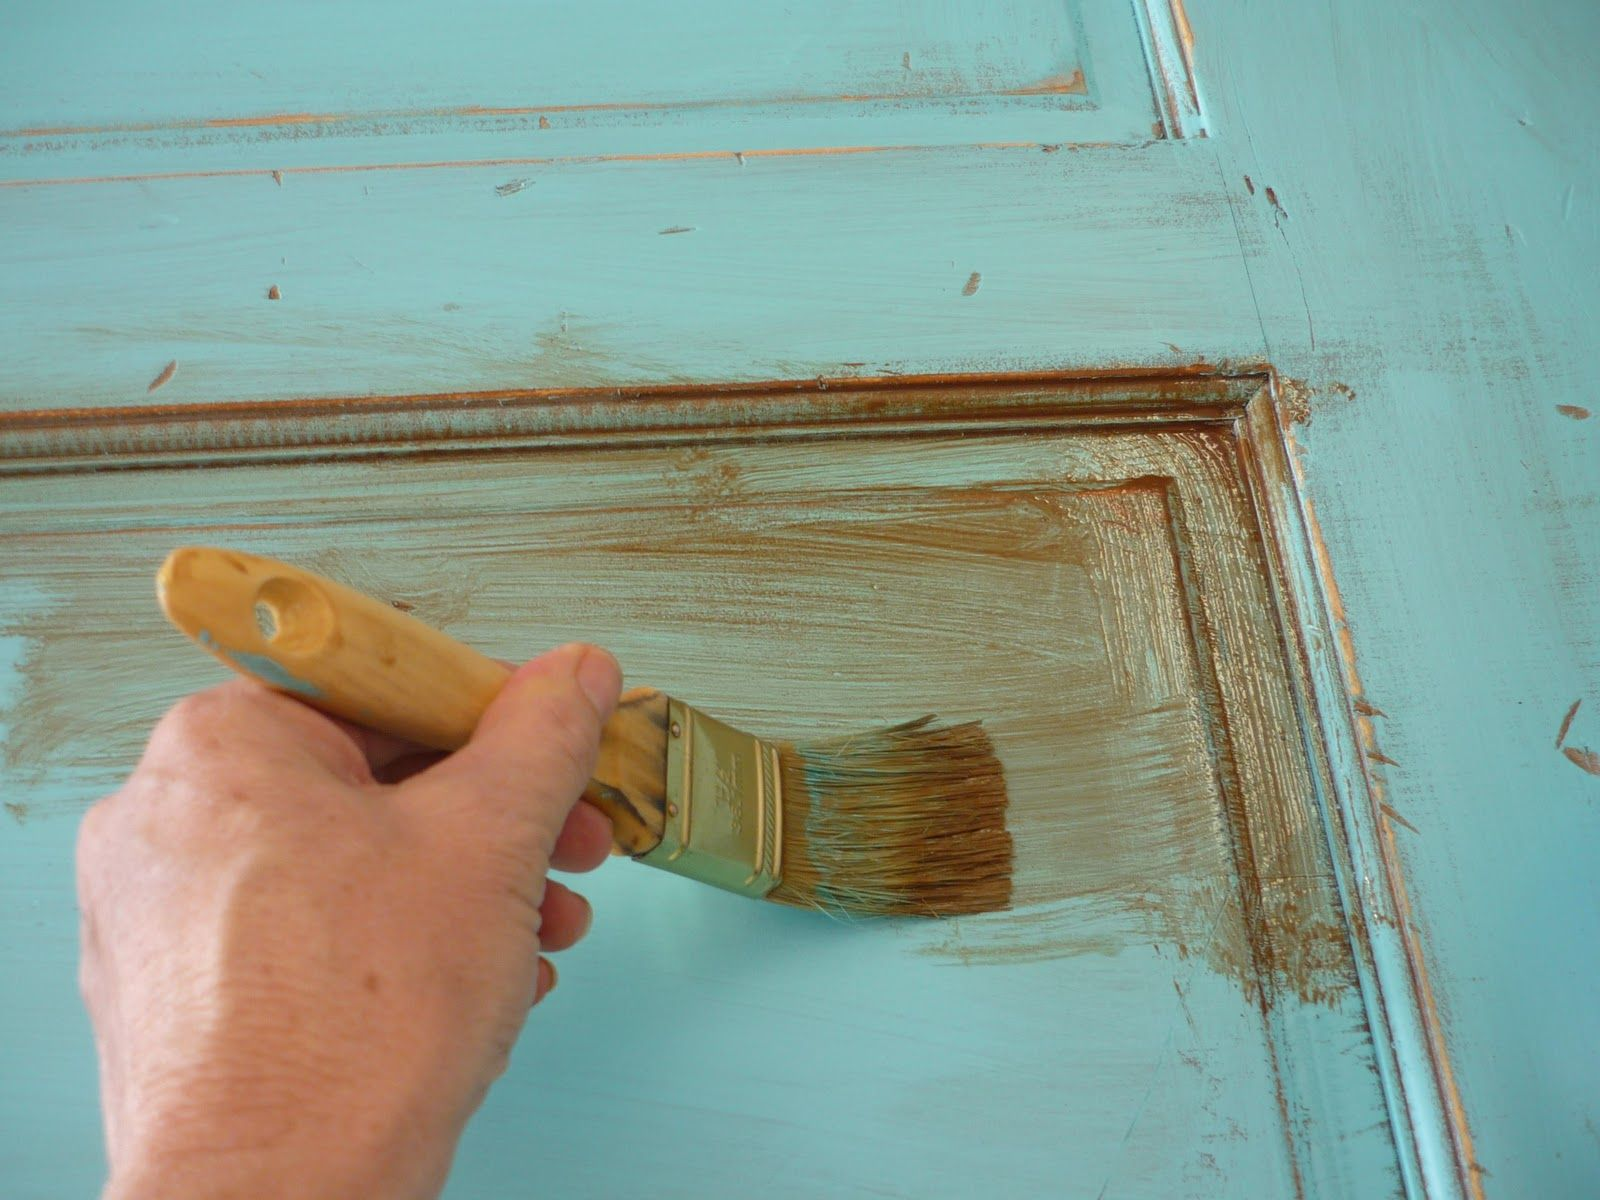 how to make wood look old - Google Search | Make a door ...